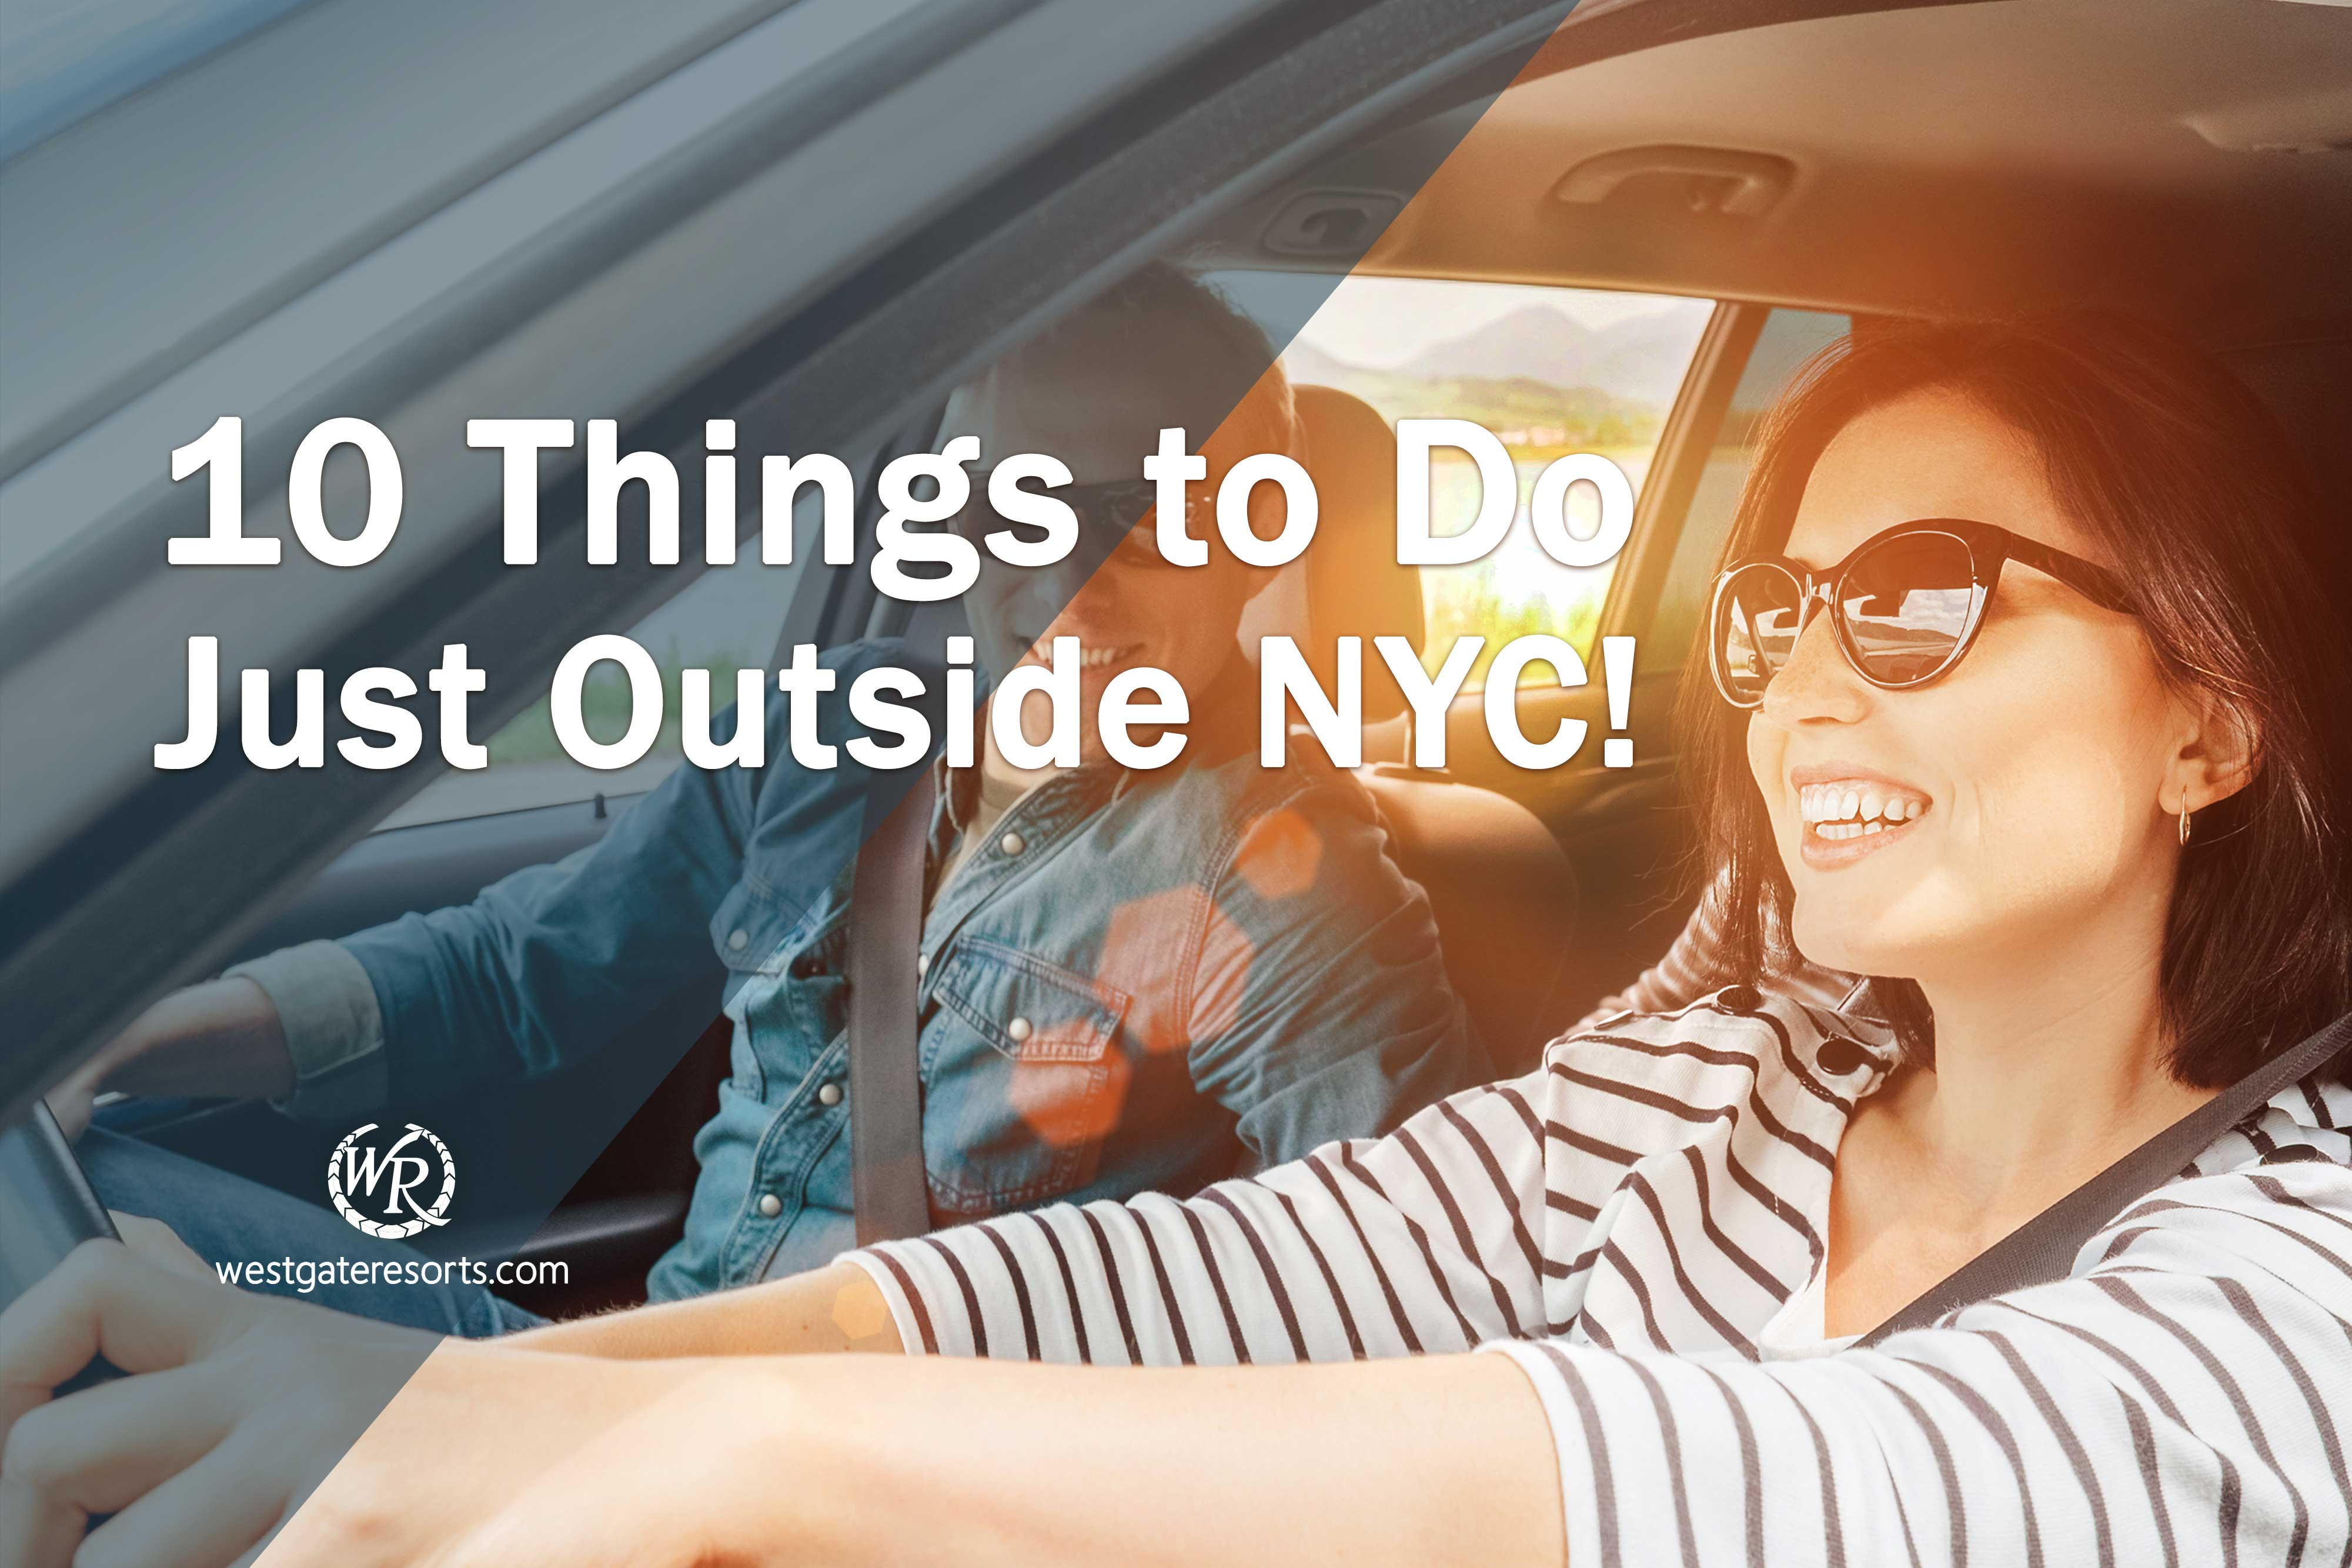 10 Things to Do Just Outside NYC